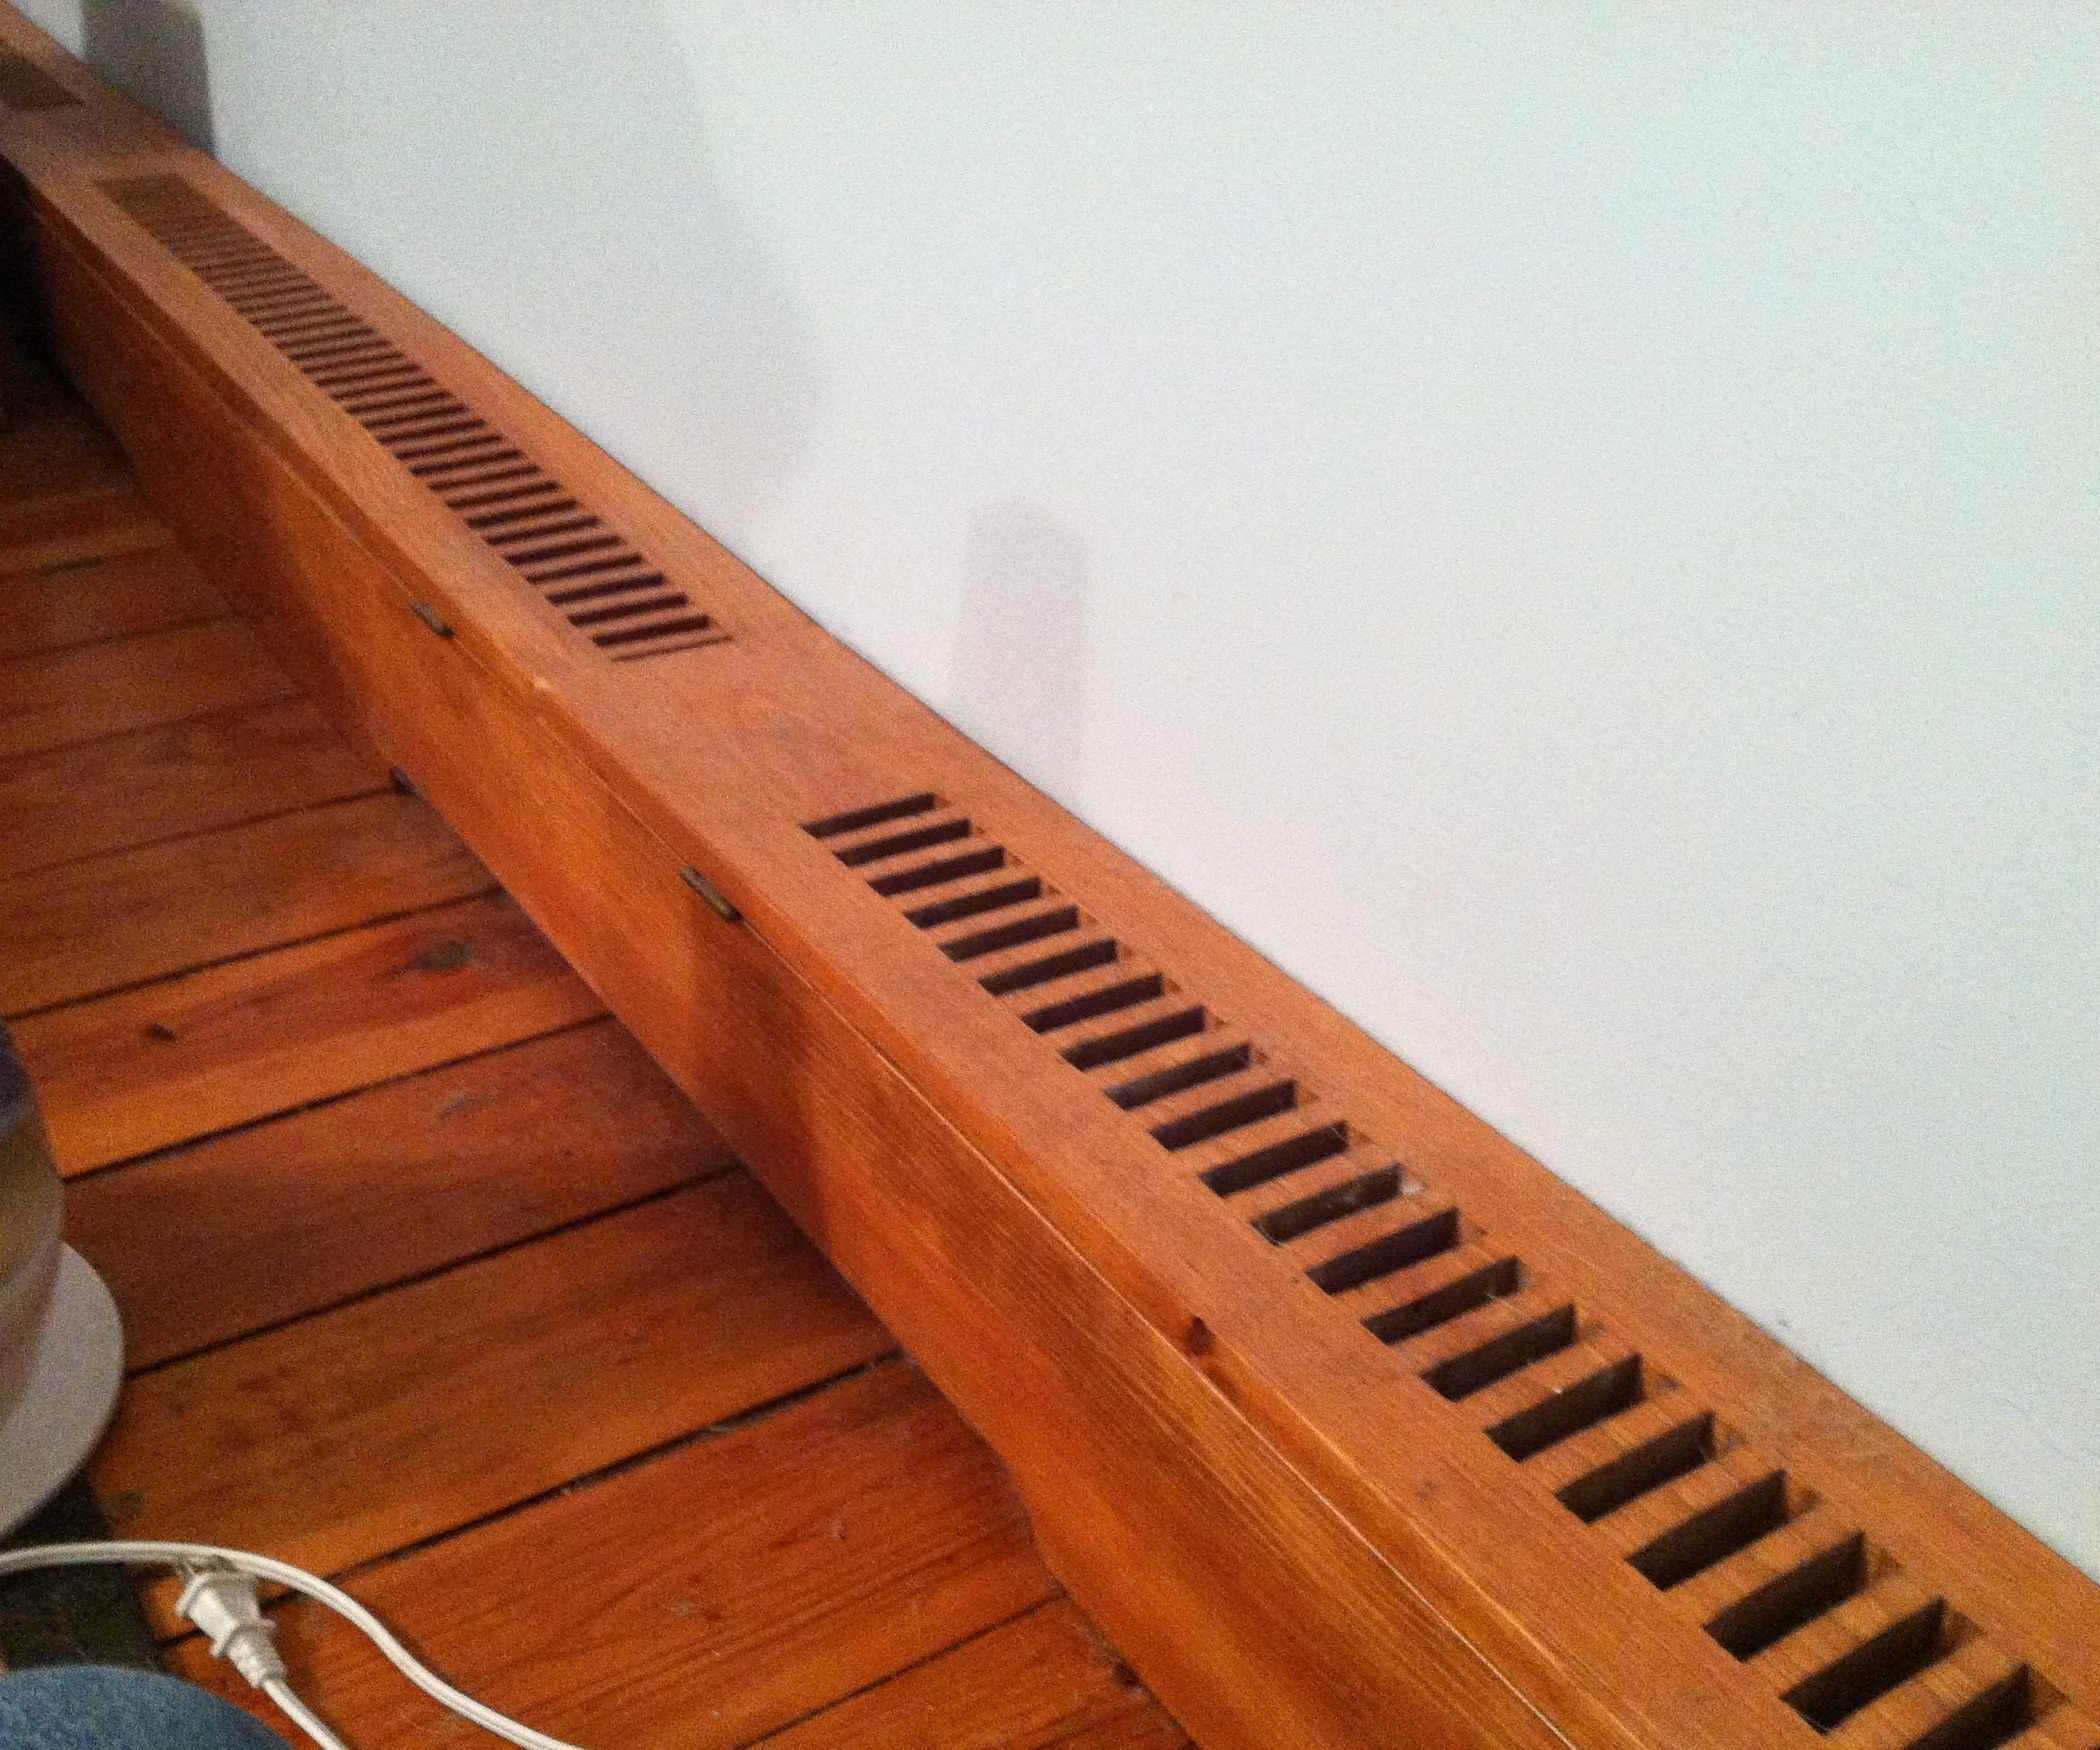 How To Make Wooden Baseboard Heater Covers Baseboard Heater